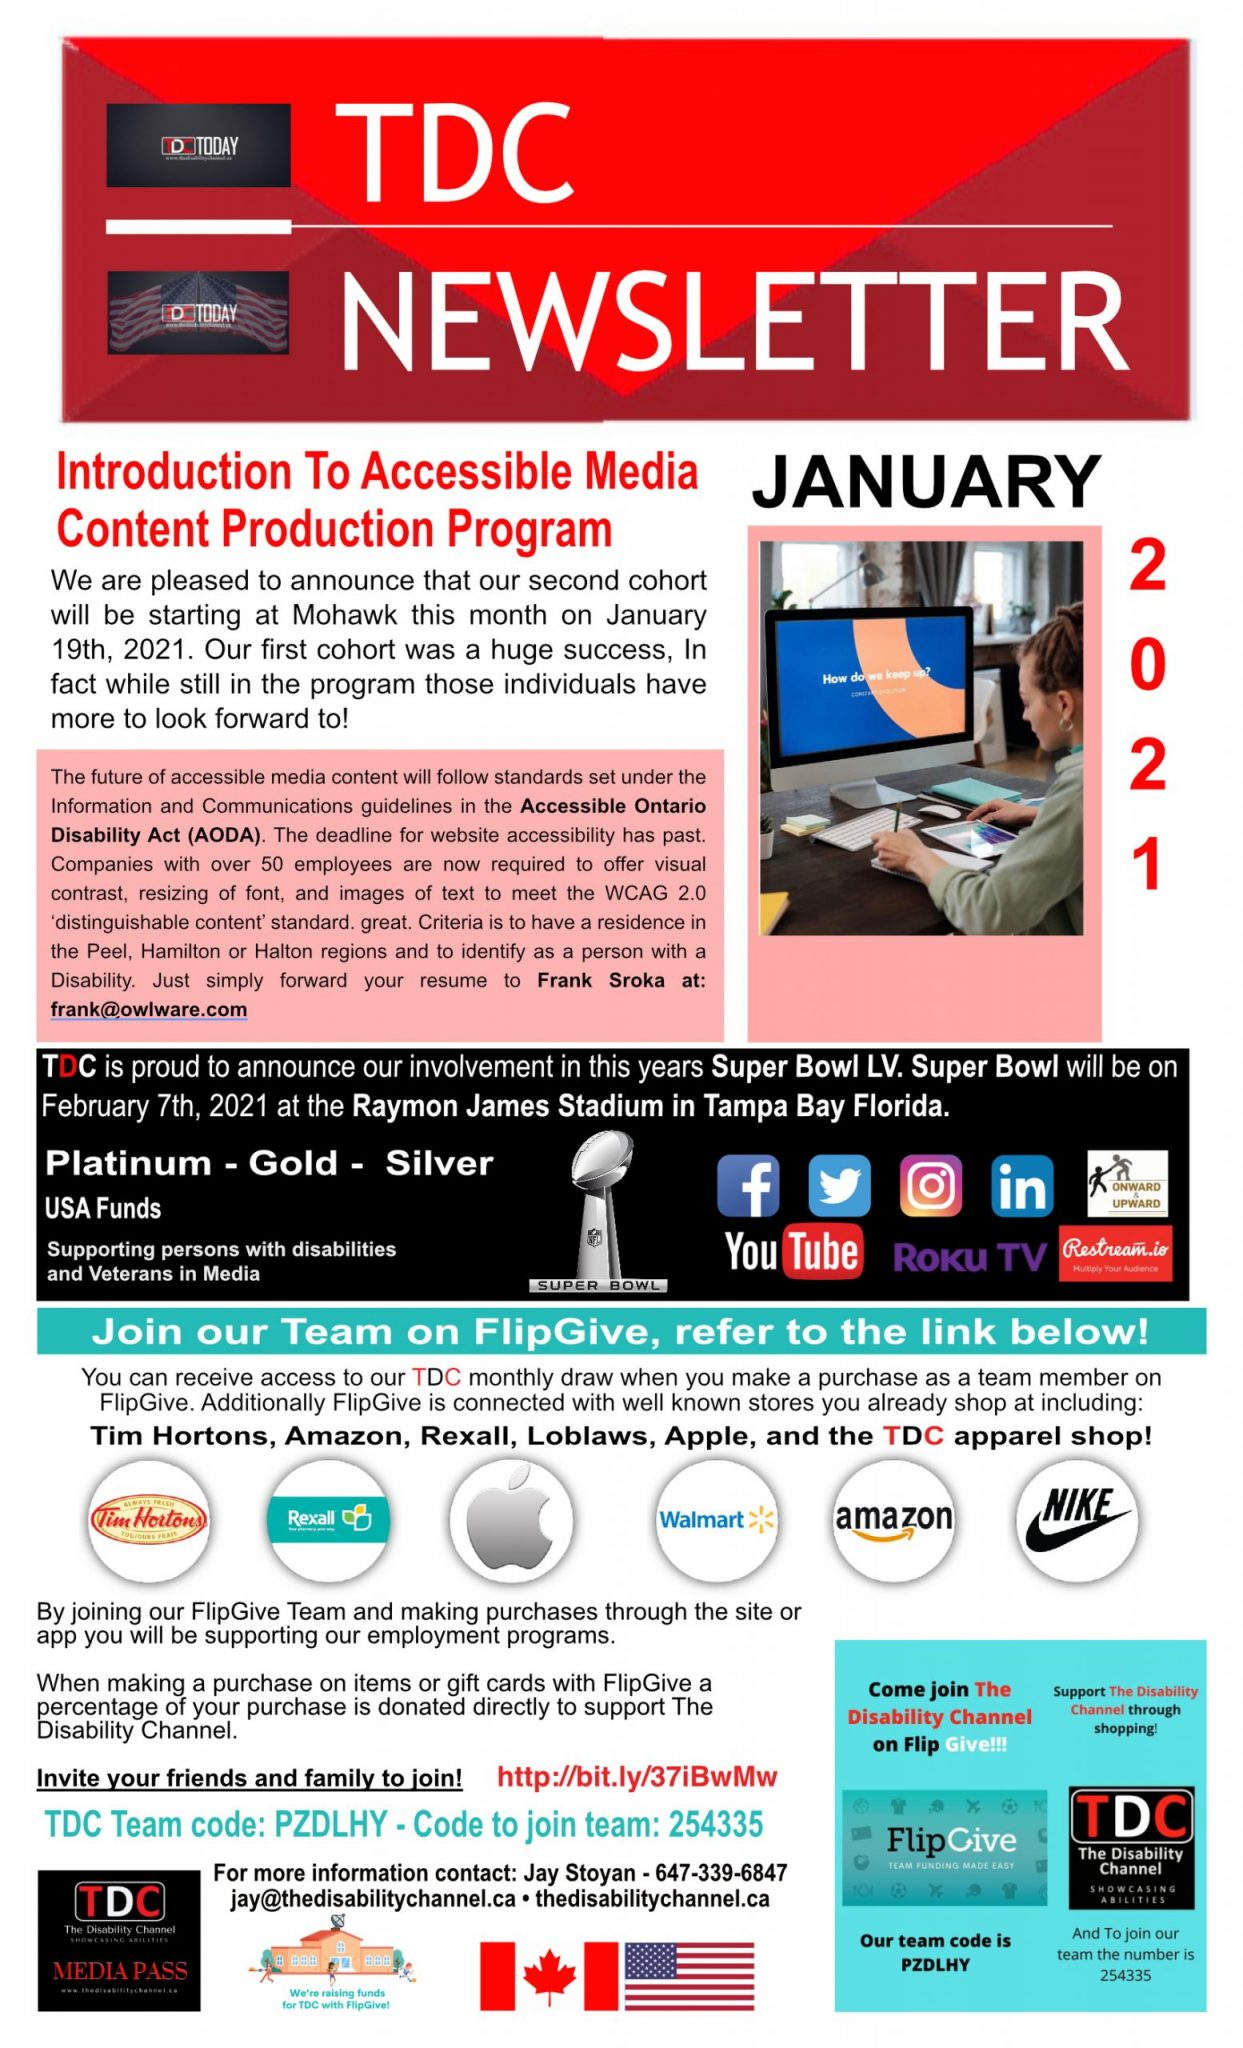 Newsletter First Quarter Introduction To Accessible Content Production Program We are pleased to announce that our second cohort will be starting at Mohawk this month on January 19th, 2021. Our first cohort was a huge success, In fact while still in the program those individuals have more to look forward to! The future of accessible media content will follow standards set under the Information and Communications guidelines in the Accessible Ontario Disability Act (AODA). The deadline for website accessibility has past. Companies with over 50 employees are now required to offer visual contrast, resizing of font, and images of text to meet the WCAG 2.0 'distinguishable content' standard. great. Criteria is to have a residence in the Peel, Hamilton or Halton regions and to identify as a person with a Disability. Just simply forward your resume to Frank Sroka at: frank@owlware.com TDC is proud to announce our involvement in this years Super Bowl LV. Super Bowl will be on February 7th, 2021 at the Raymon James Stadium in Tampa Bay Florida. Platinum - Gold - Silver USA Funds Supporting persons with disabilities and Veterans in Media Join our Team on FlipGive, refer to the link below! You can receive access to our TDC monthly draw when you make a purchase as a team member on FlipGive. Additionally FlipGive is connected with well known stores you already shop at including: Tim Hortons, Amazon, Rexall, Loblaws, Apple, and the TDC apparel shop! By joining our FlipGive Team and making purchases through the site or app you will be supporting our employment programs. When making a purchase on items or gift cards with FlipGive a percentage of your purchase is donated directly to support The Disability Channel. Invite your friends and family to join! http://bit.ly/37iBwMw TDC Team code: PZDLHY - Code to join team: 254335 For more information contact: Jay Stoyan - 647-339-6847 jay@thedisabilitychannel.ca • thedisabilitychannel.ca